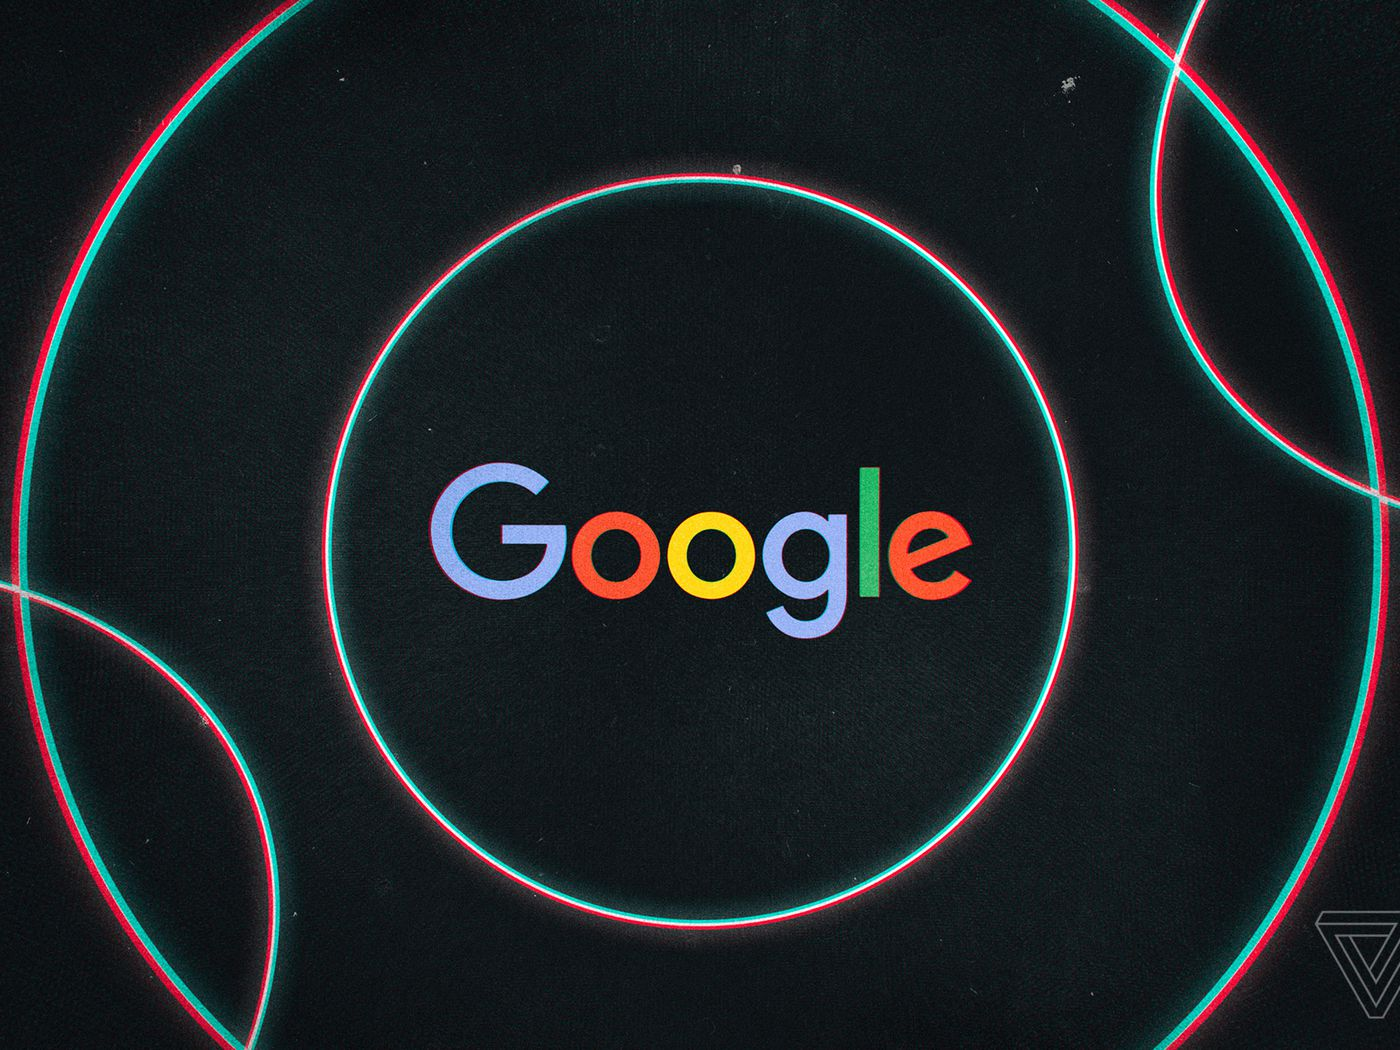 Google recovers from outage that took down YouTube, Gmail